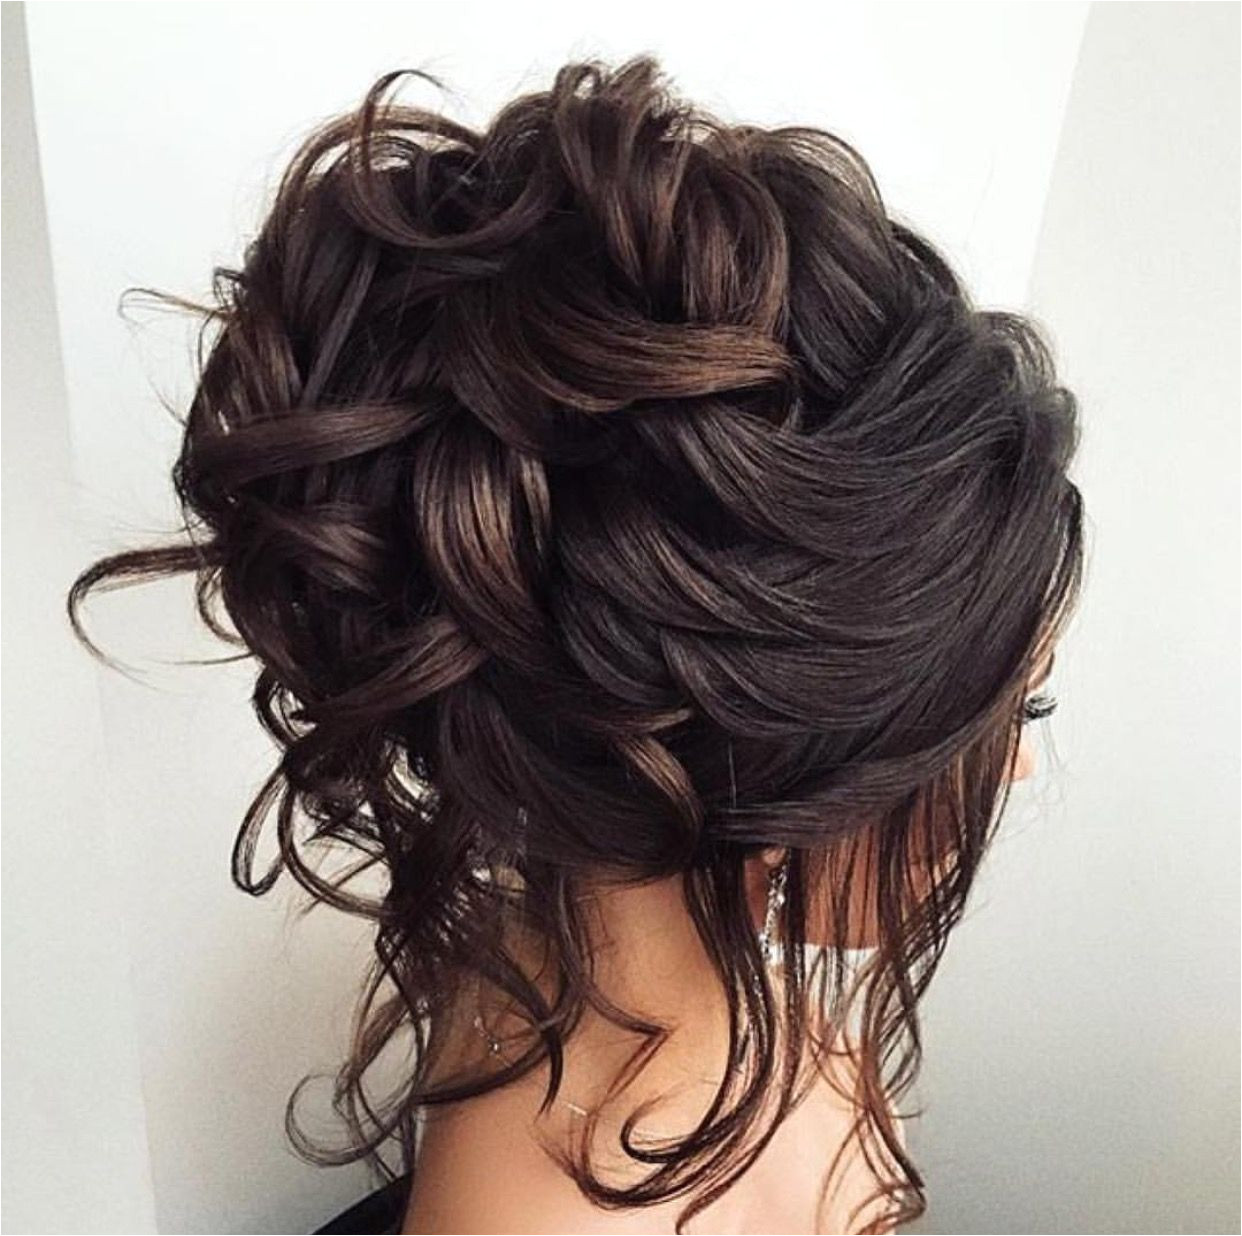 Curly hairyy Curly Hair Updo Wedding Bridal Hair Updo Loose Romantic Wedding Hairstyles